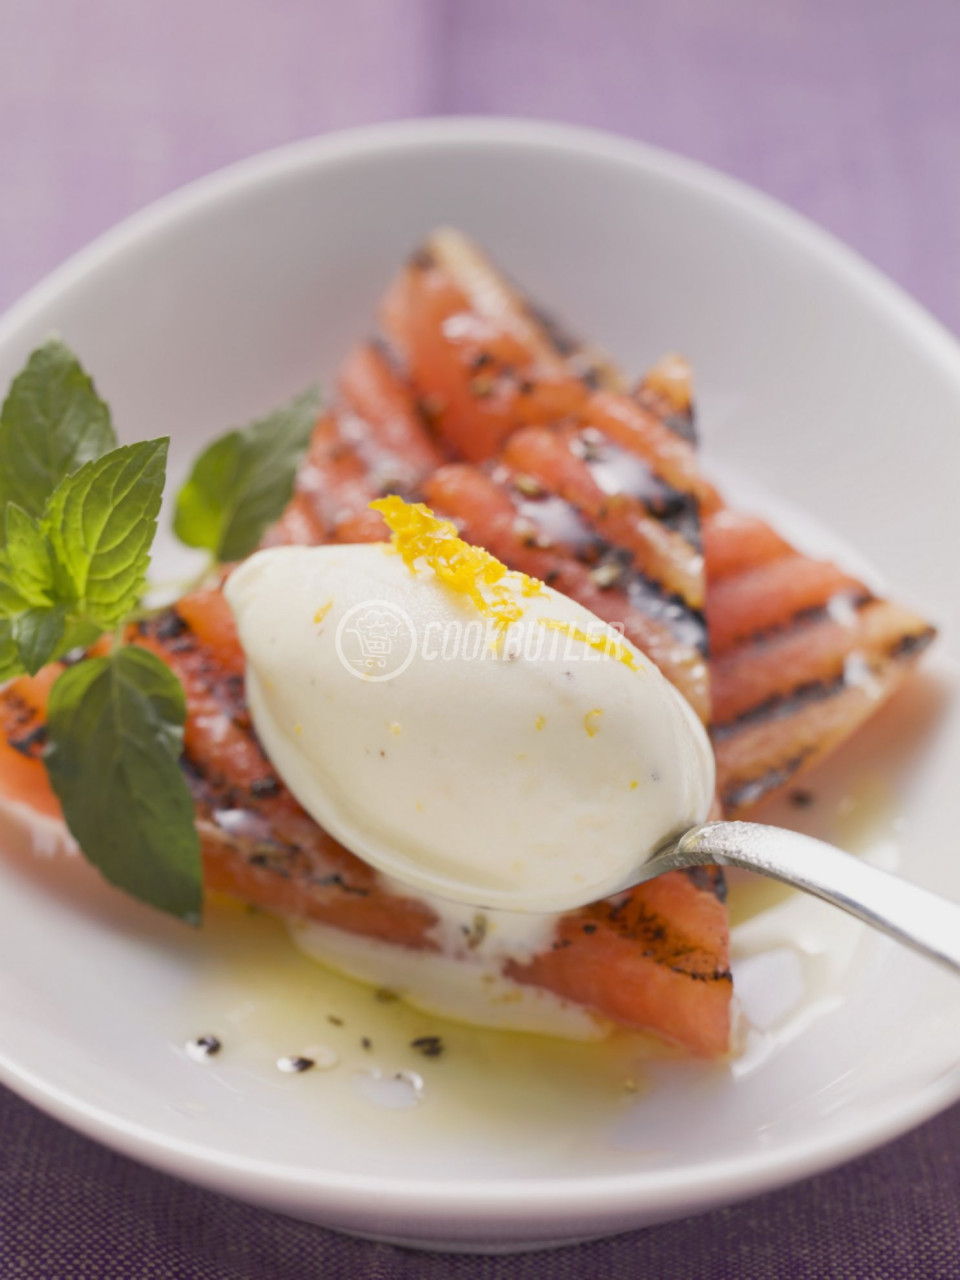 Charred Watermelon with Orange and Sour Cream Ice Cream | preview